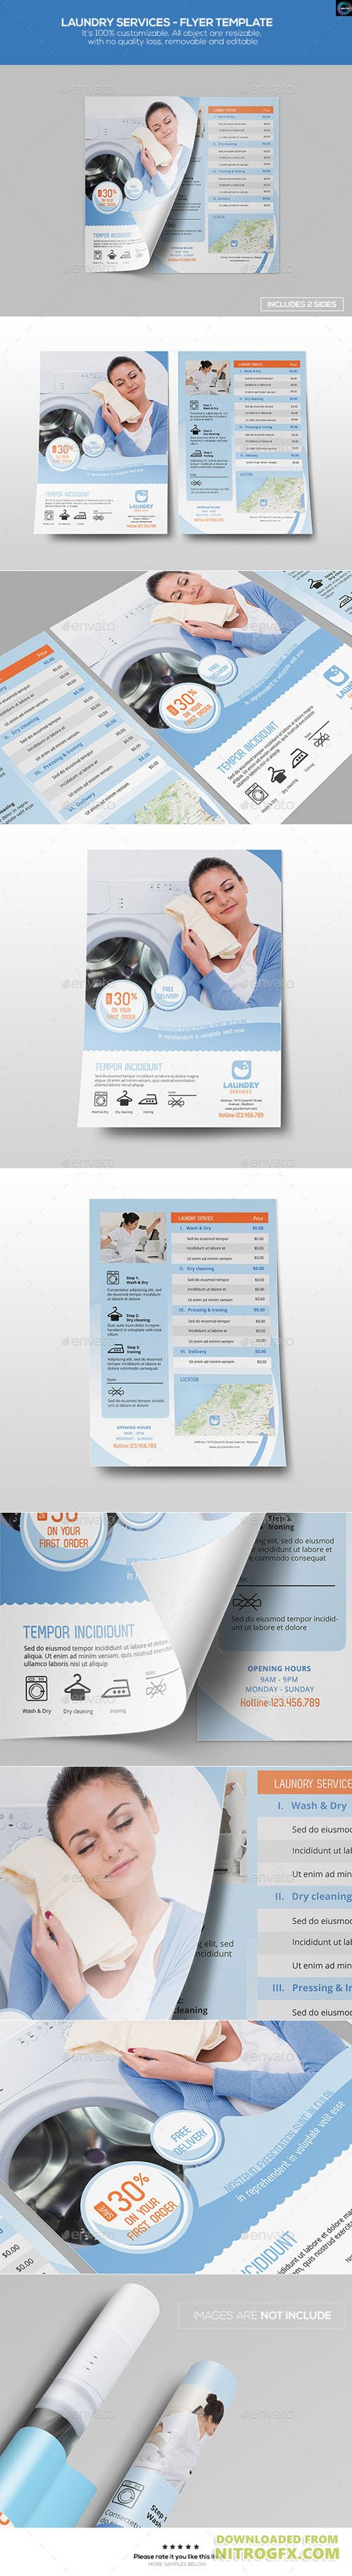 laundry flyers templates - laundry services flyer template 12597923 nitrogfx